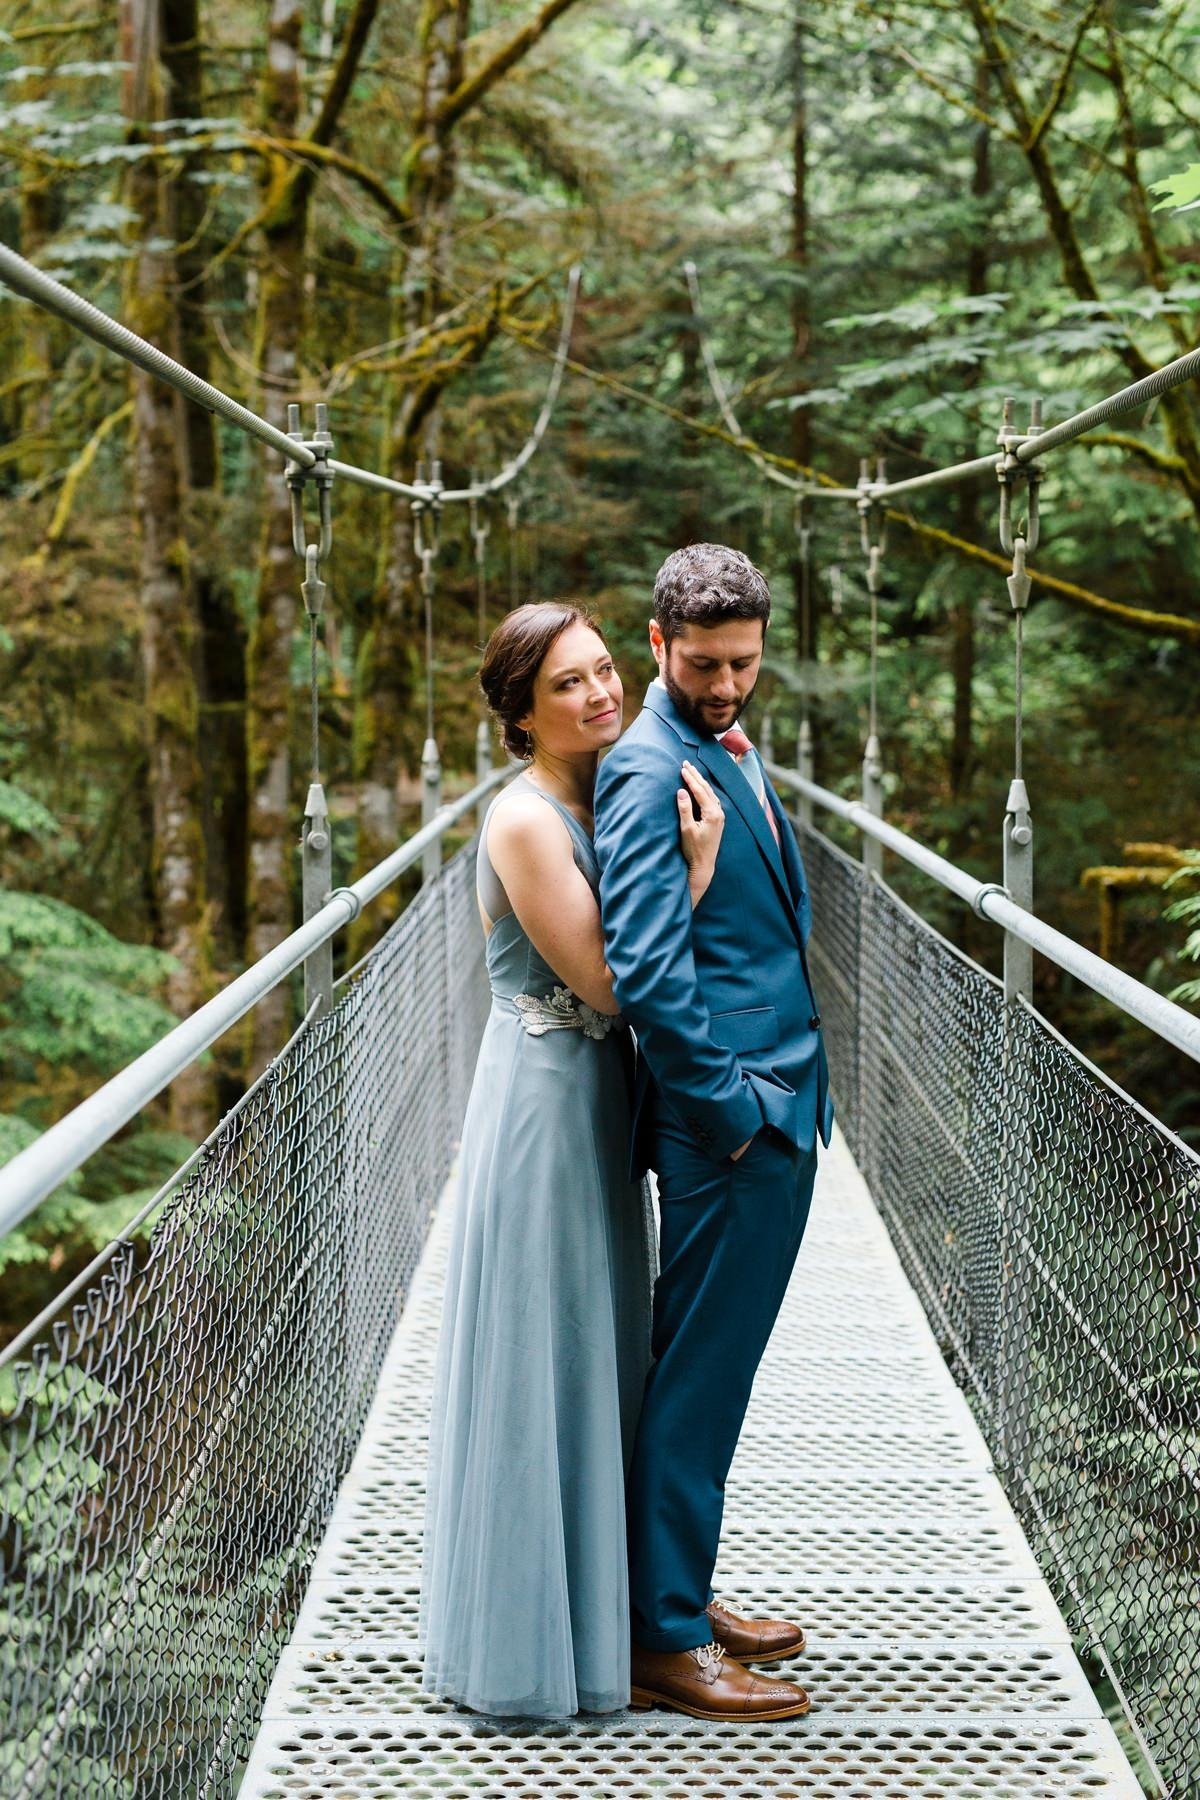 bainbridge-island-washington-wedding-photographer-cameron-zegers-201_1200